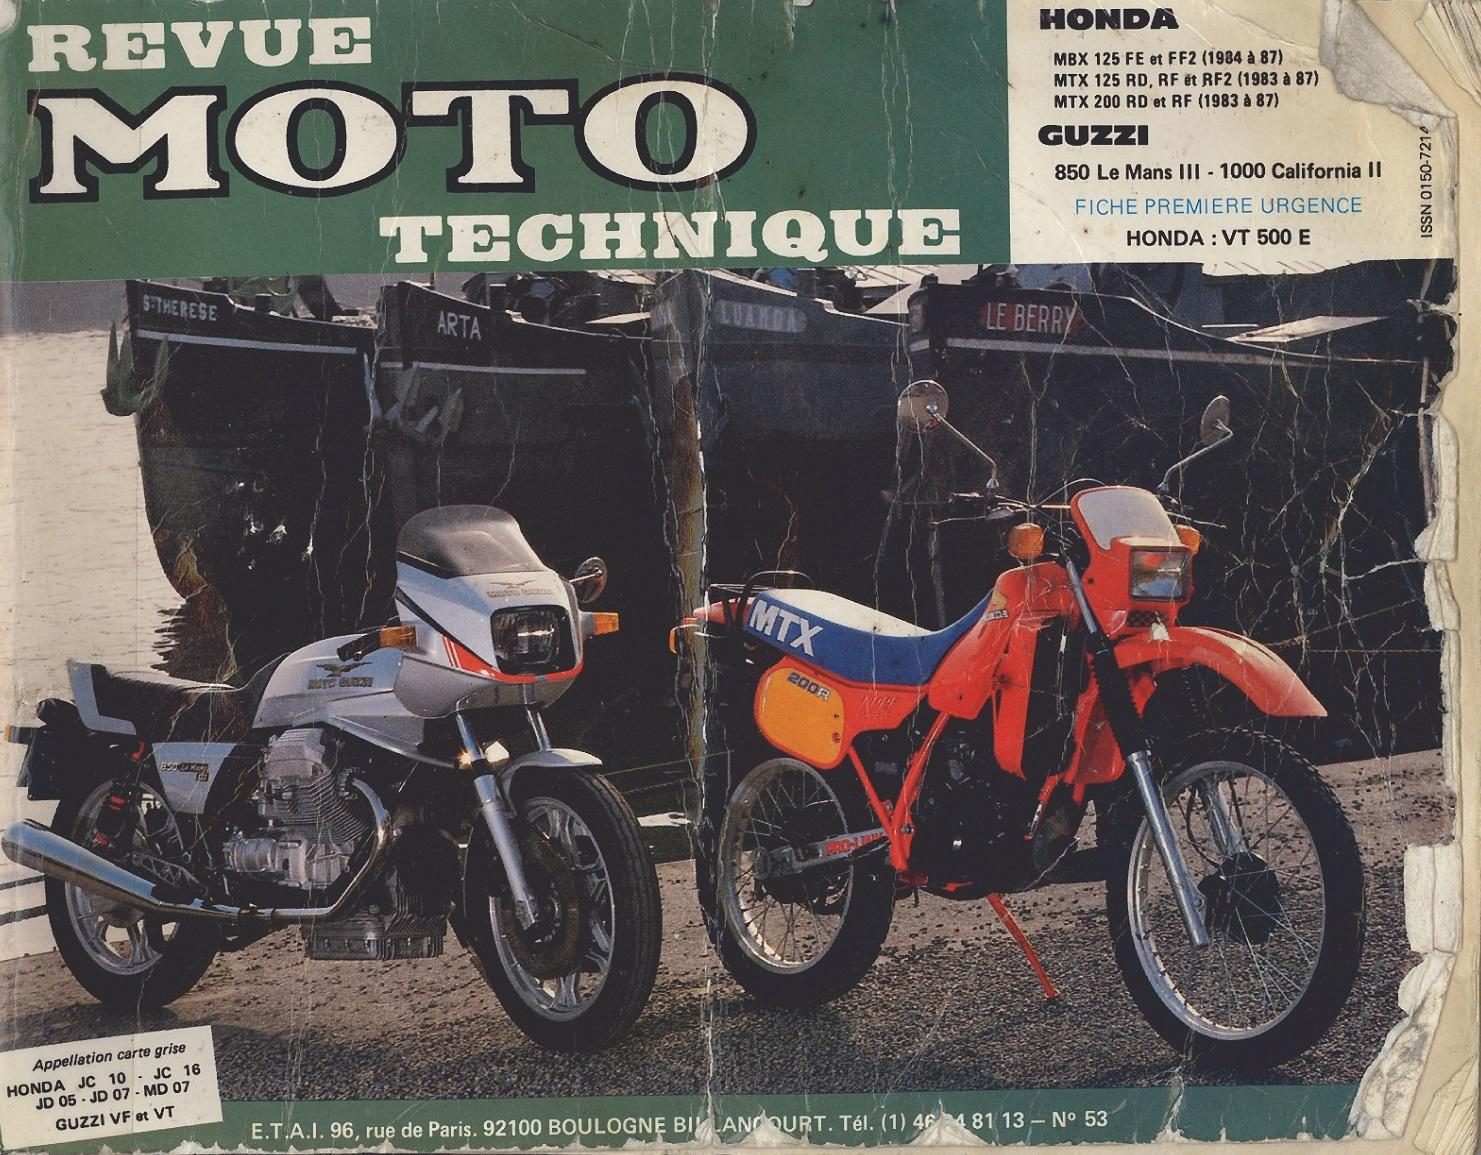 Workshop Manual for Honda MTX125RD (1983-1987)